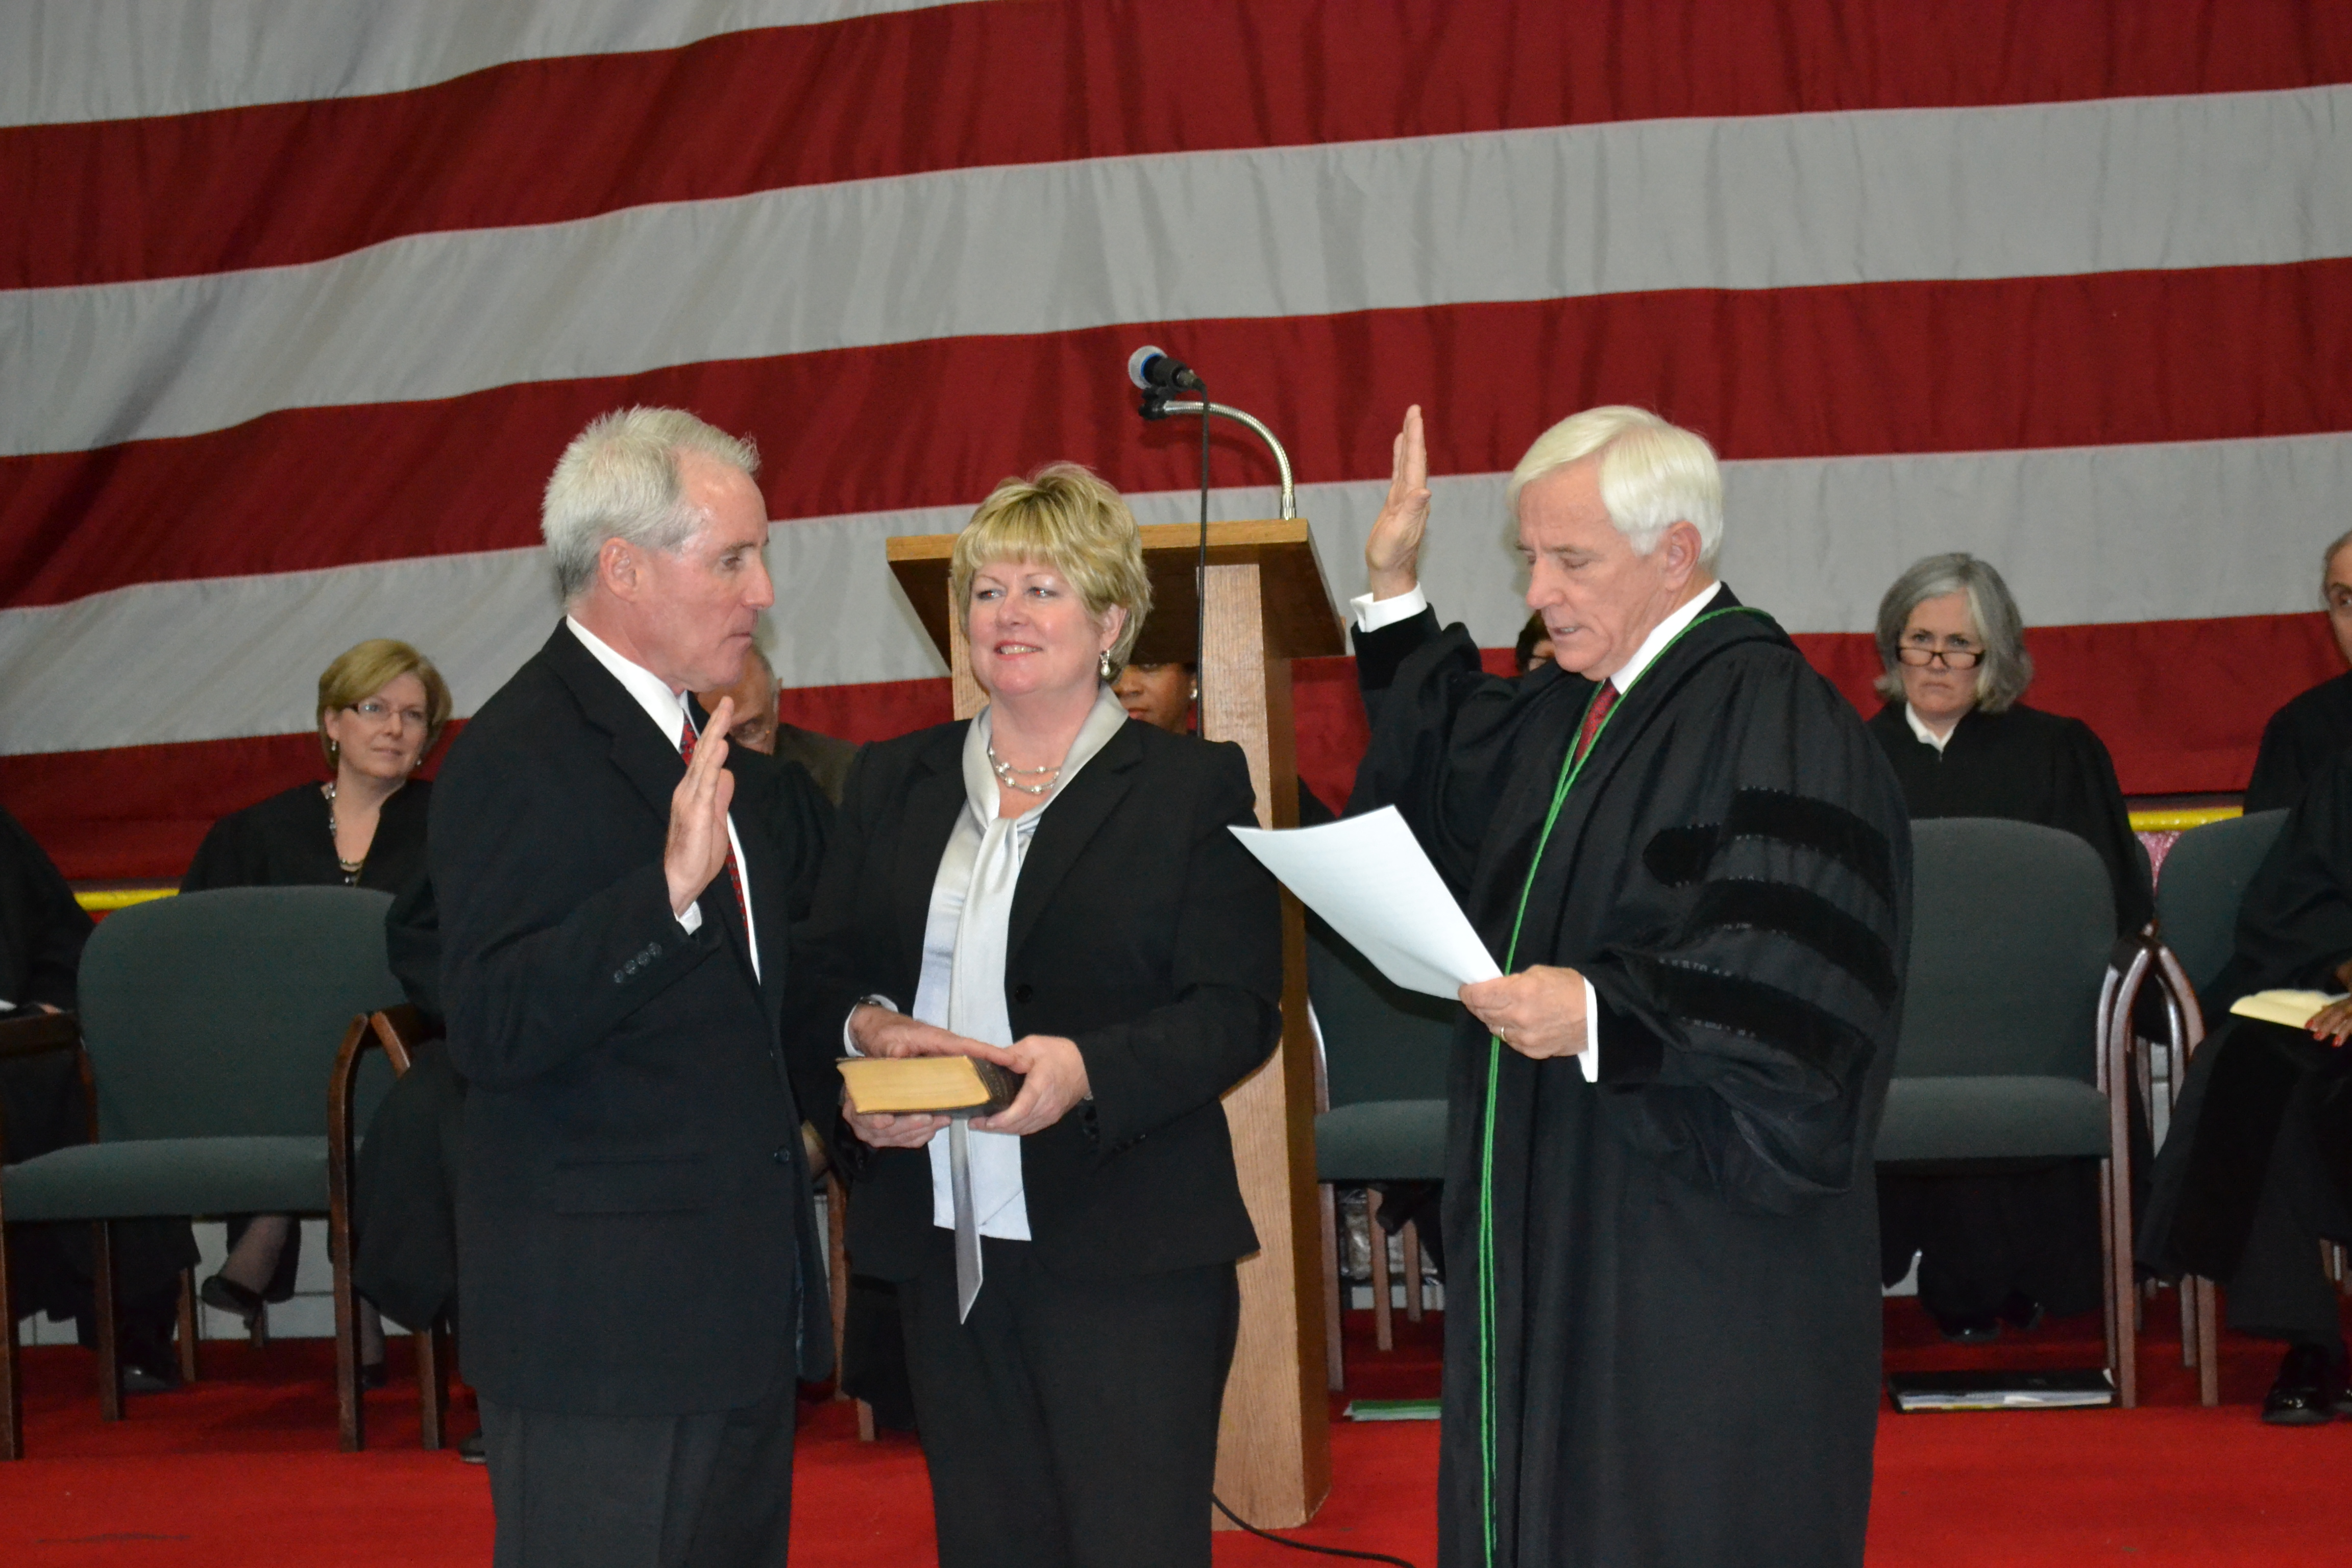 Judge Timothy McCormack '62 takes oath of office at VASJ